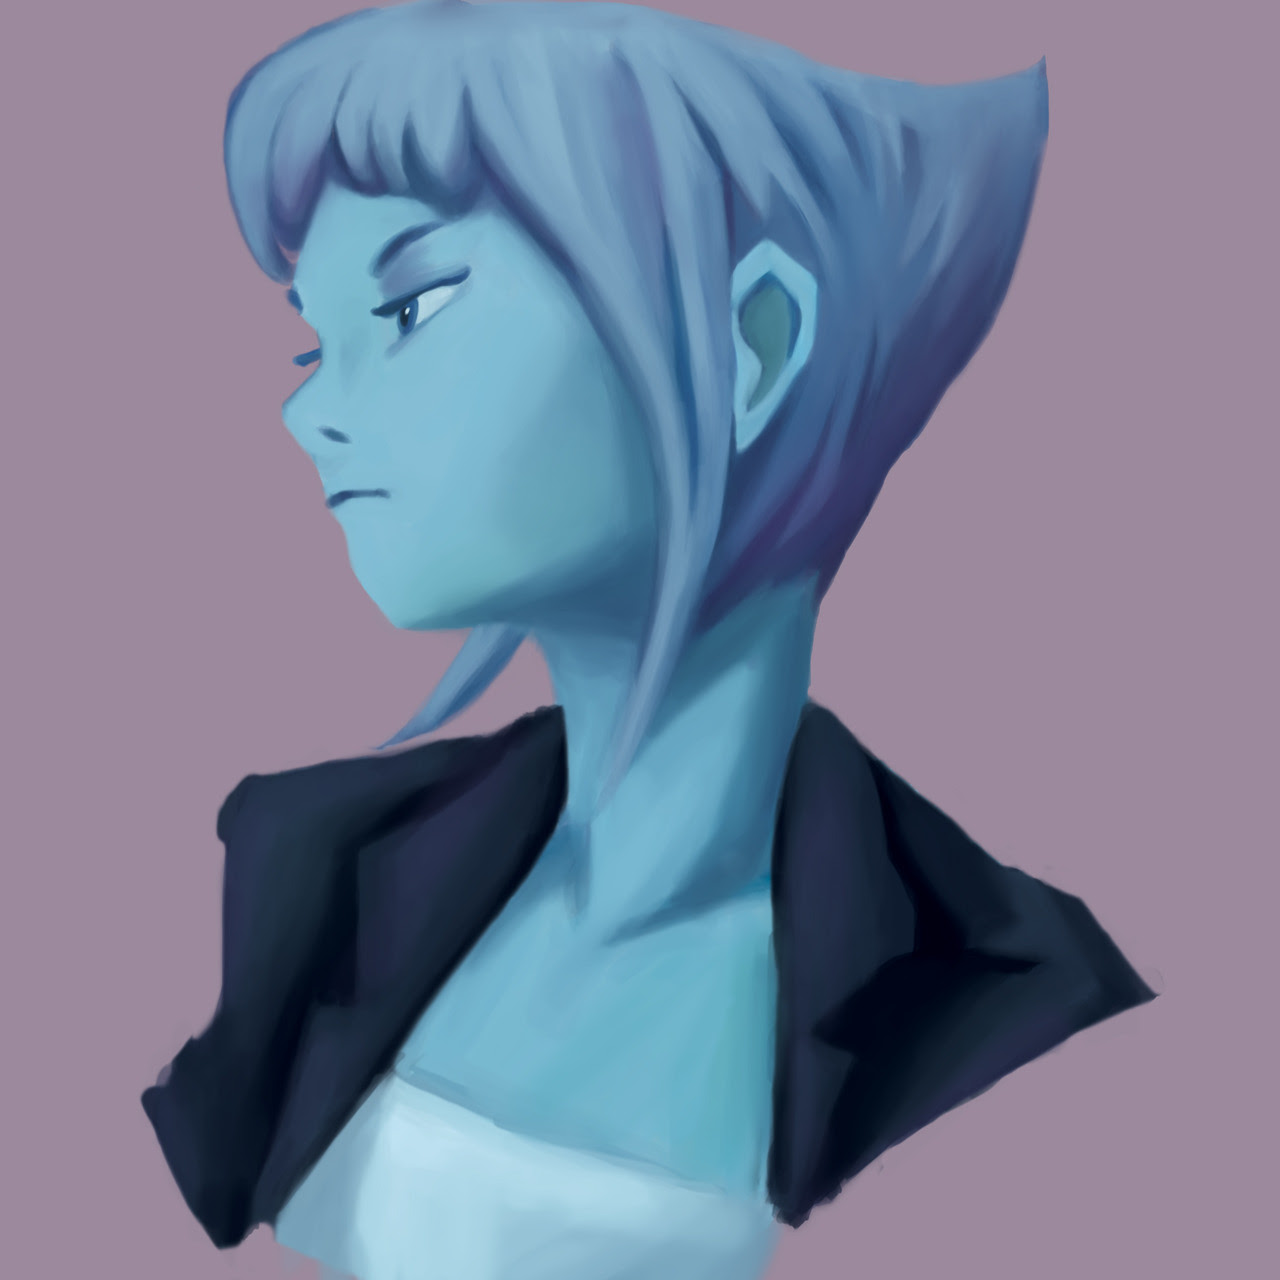 Lapis Lazuli Portrait! COMMISSIONS ARE OPEN! Please reblog and spread the word to help out a cute art student ❤️️